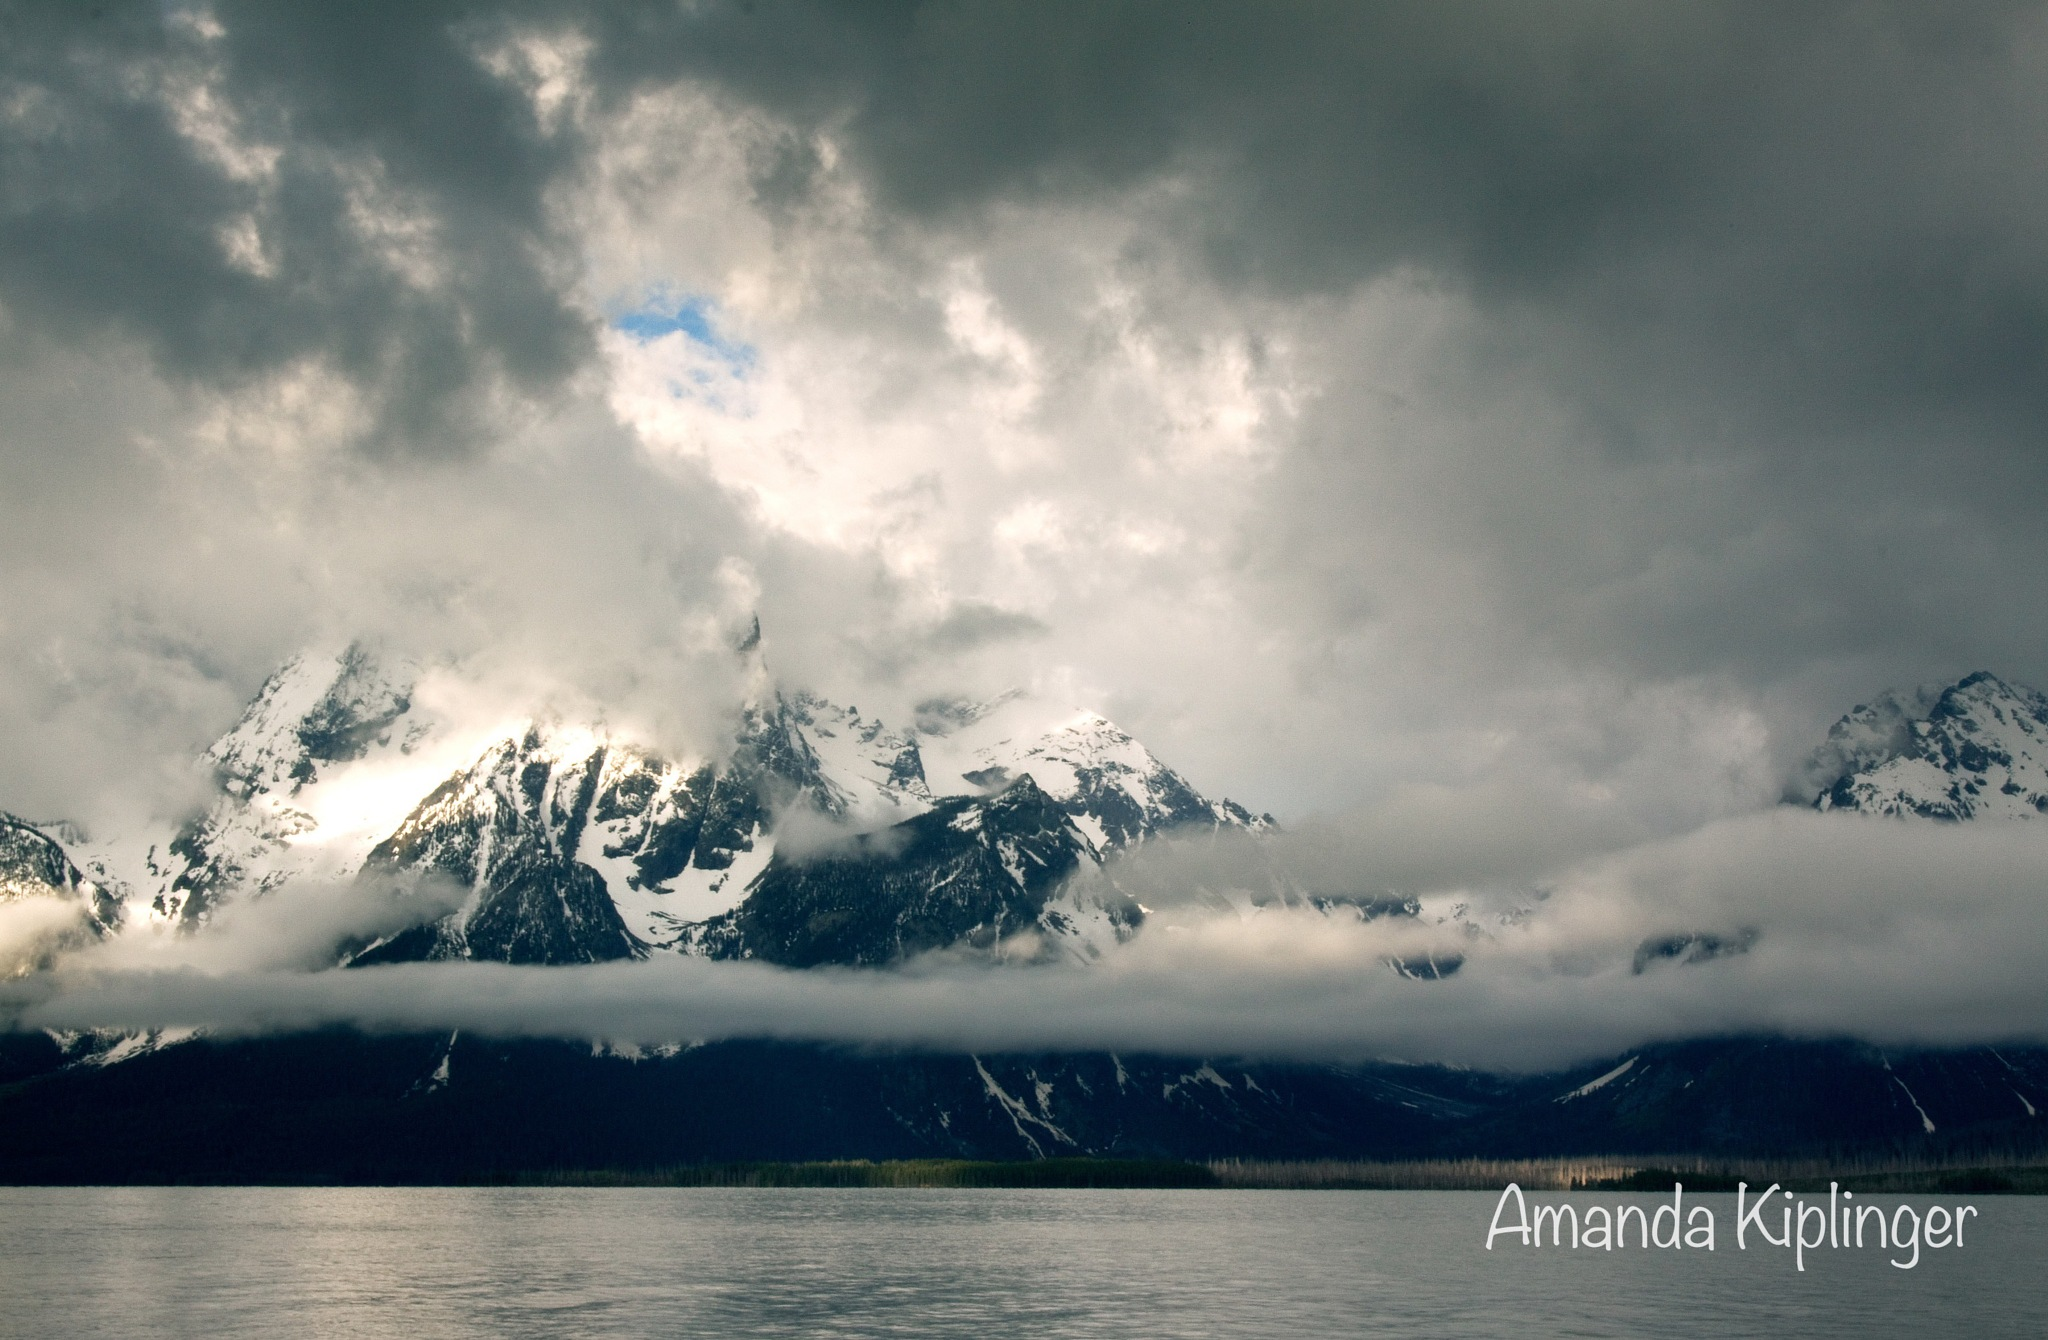 Blue Sky Trying to Poke Through Clouds by Amanda Kiplinger